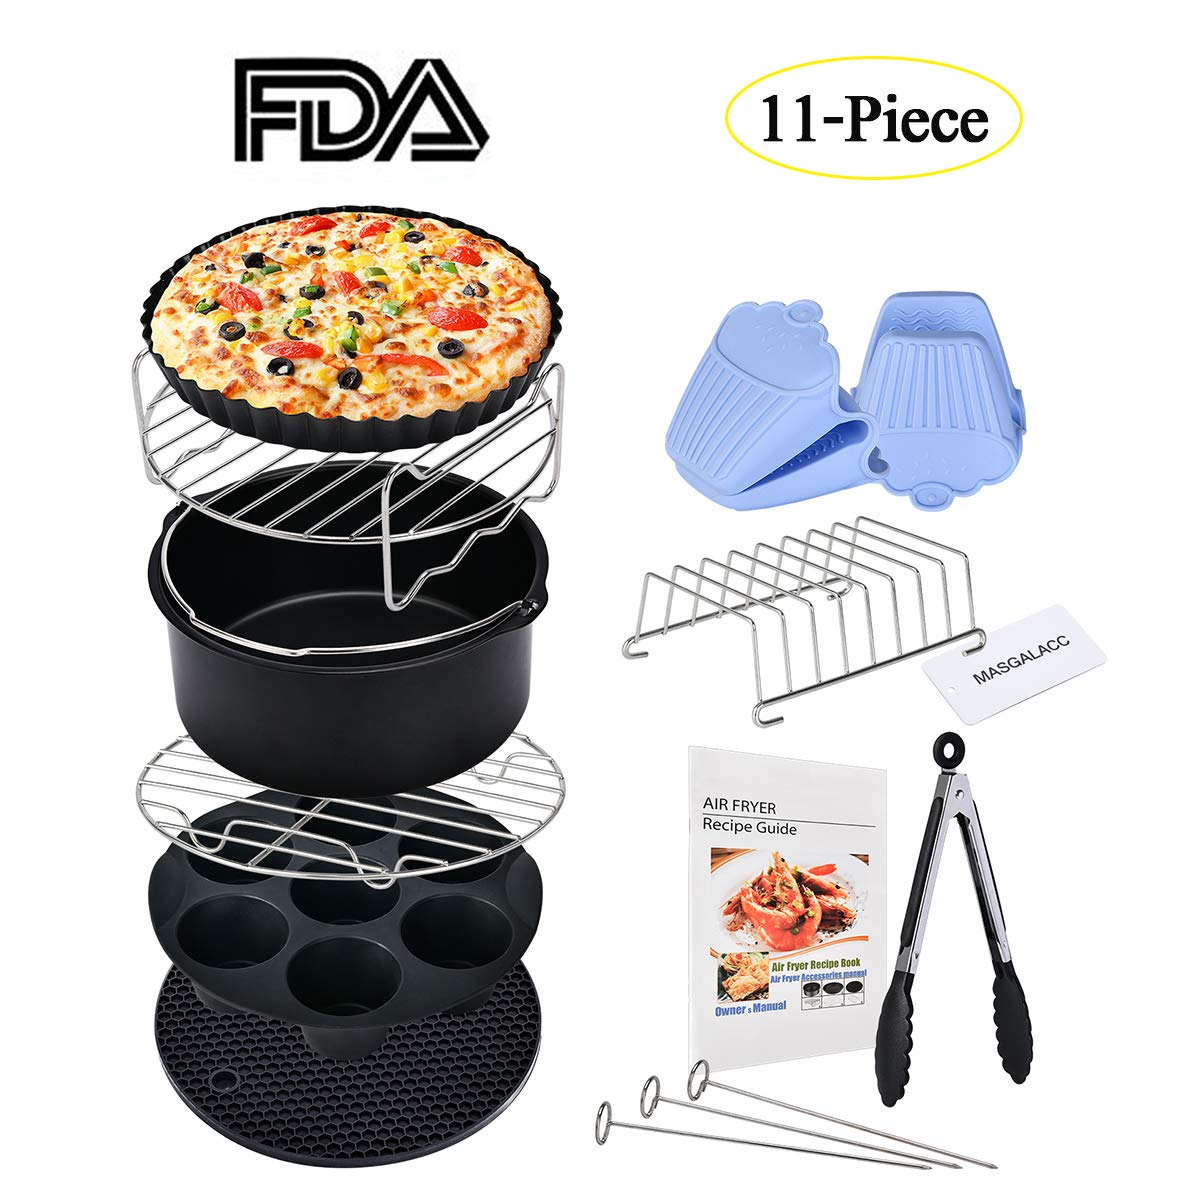 Air Fryer Accessories 11pcs Fits all 3.7QT- 4.2QT for Gowise Phillips and Cozyna - Non-stick Barrel/Pan, Stainless Steel Holder, Silicone Mat, Cookbook Included